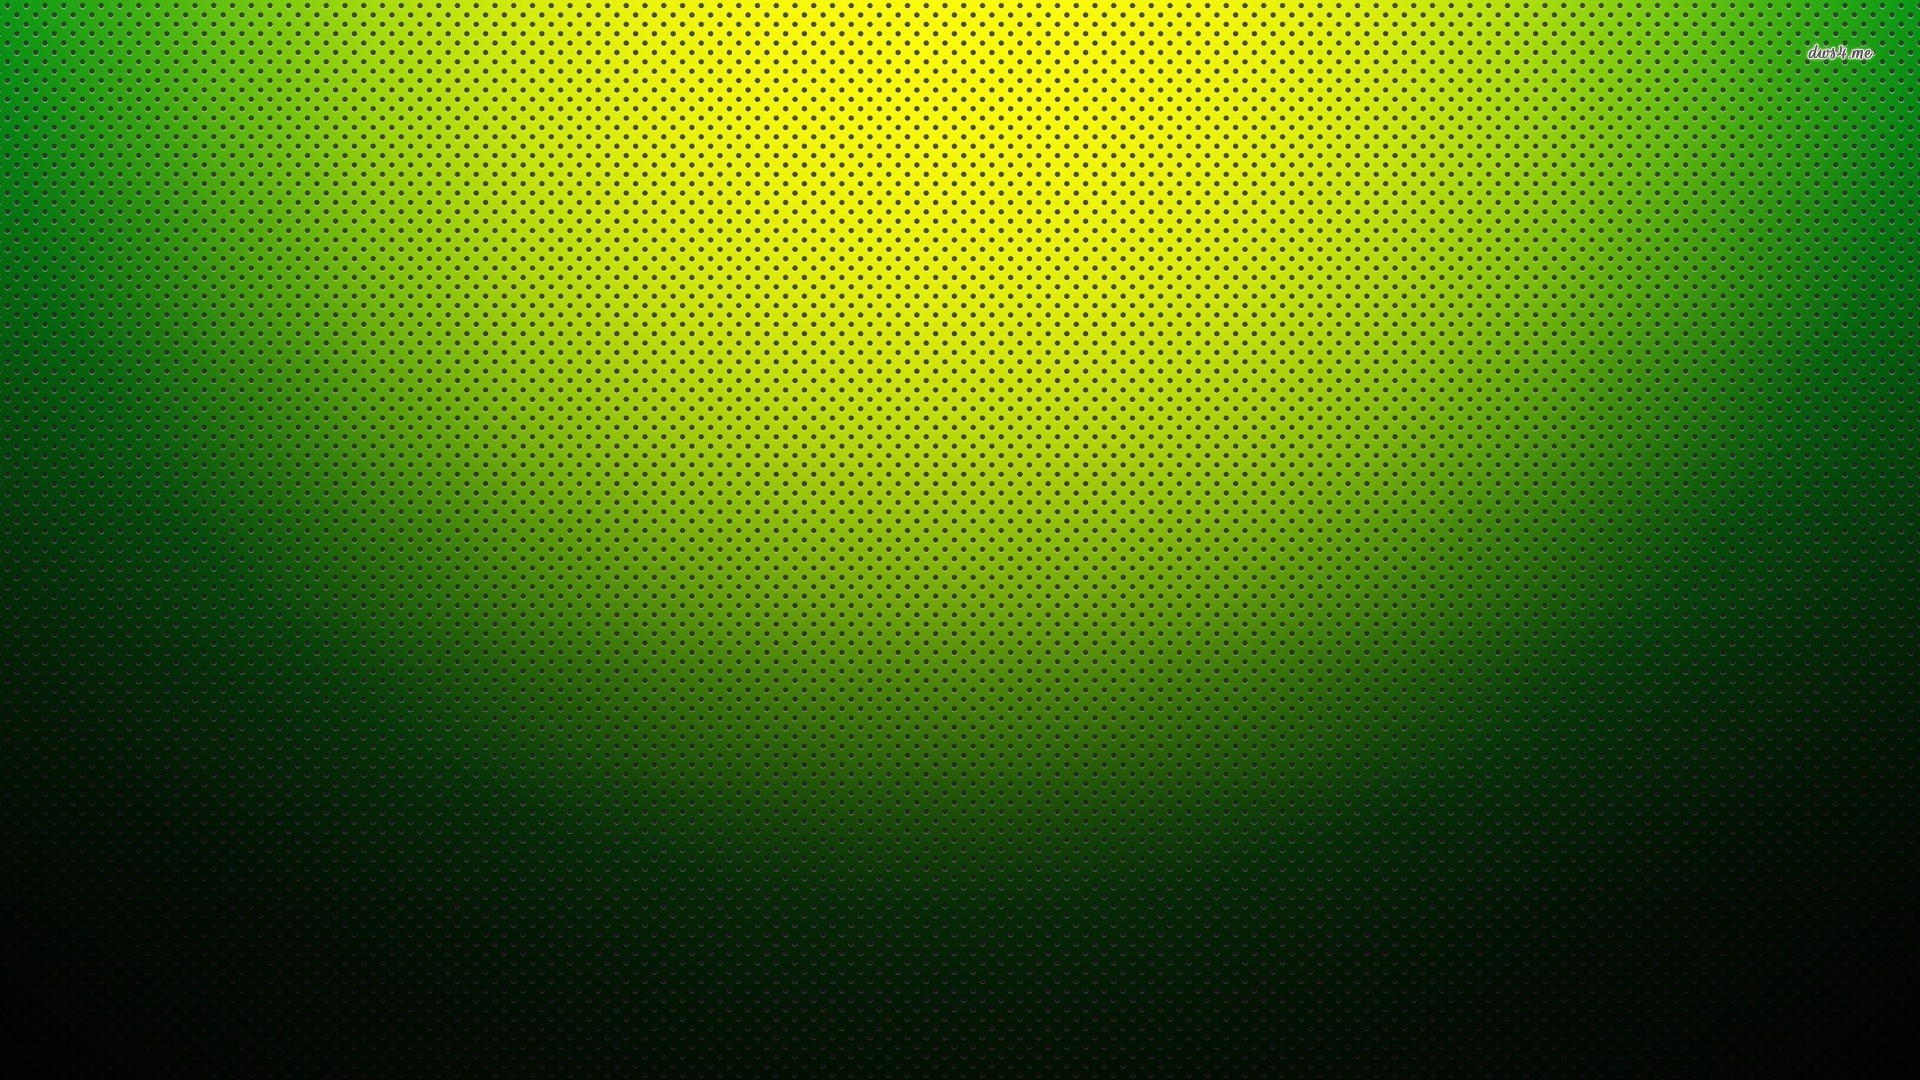 Green perforated metal pattern wallpaper   Abstract wallpapers 1920x1080